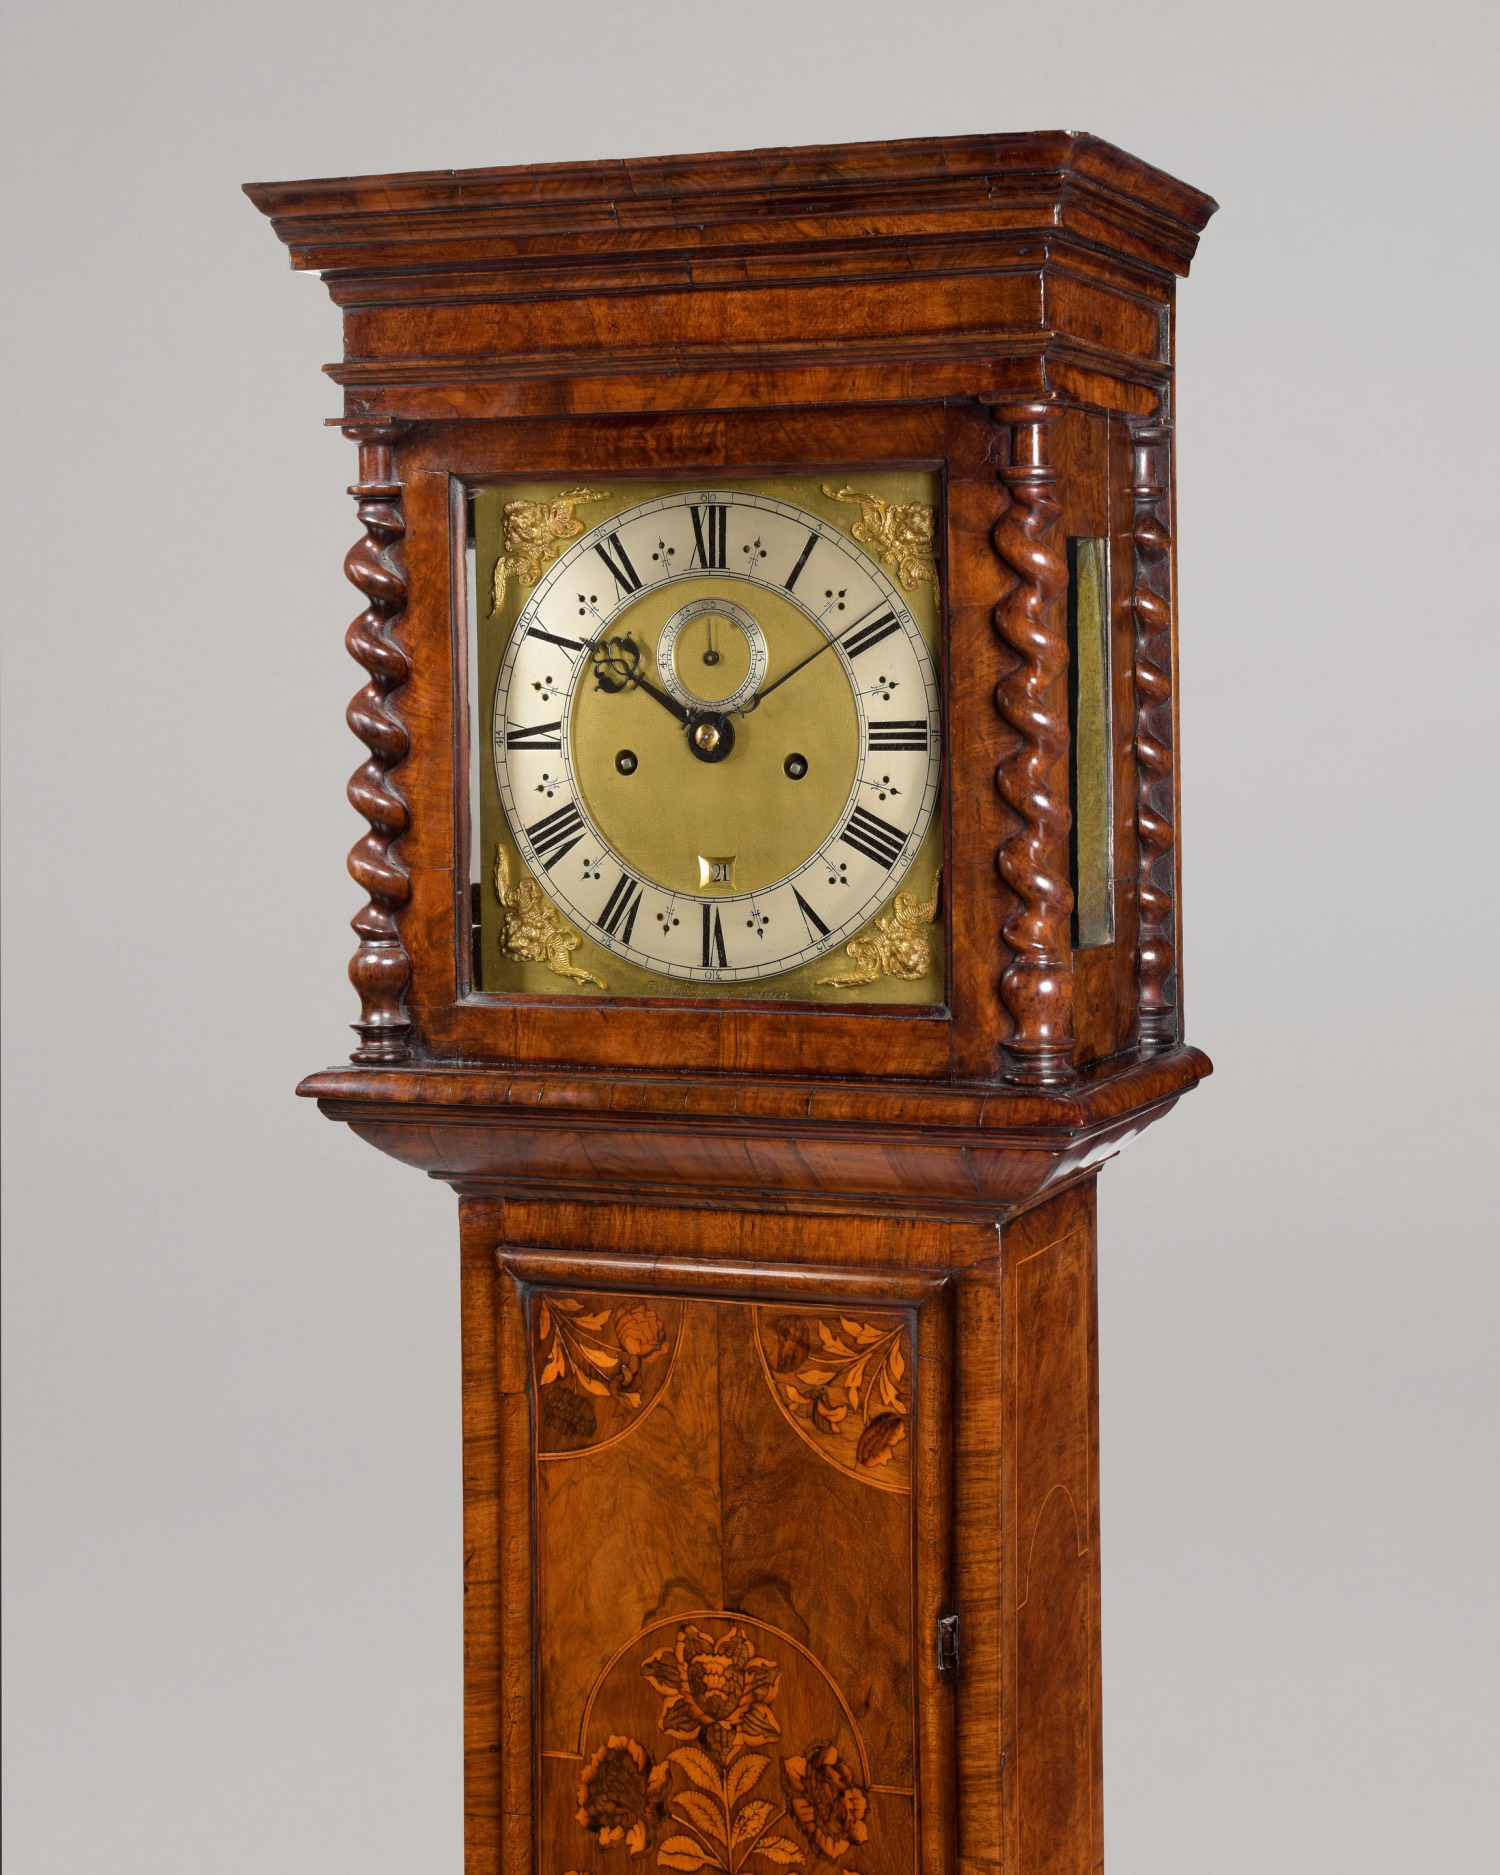 WILLIAM KNOTTESFORD LONDINI. A FINE JAMES II PERIOD WALNUT FLORAL MARQUETRY LONGCASE CLOCK.